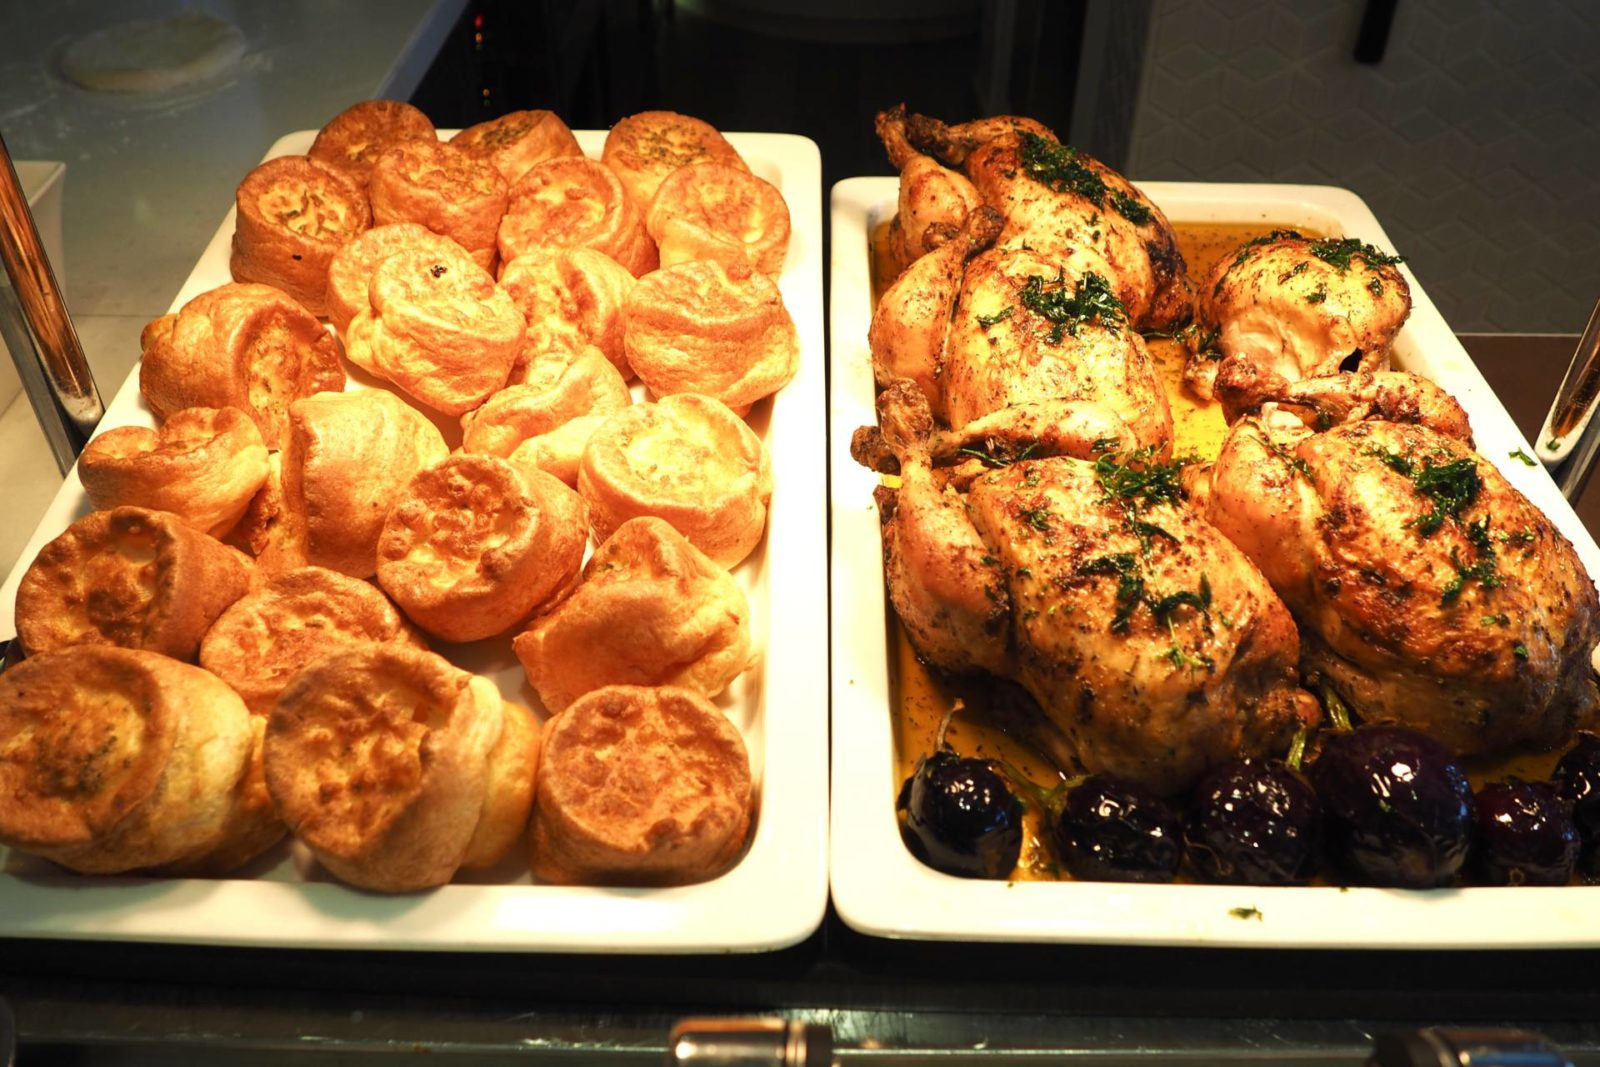 Carvery Brunch at Brasserie 2.0 Le Royal Meridien Review